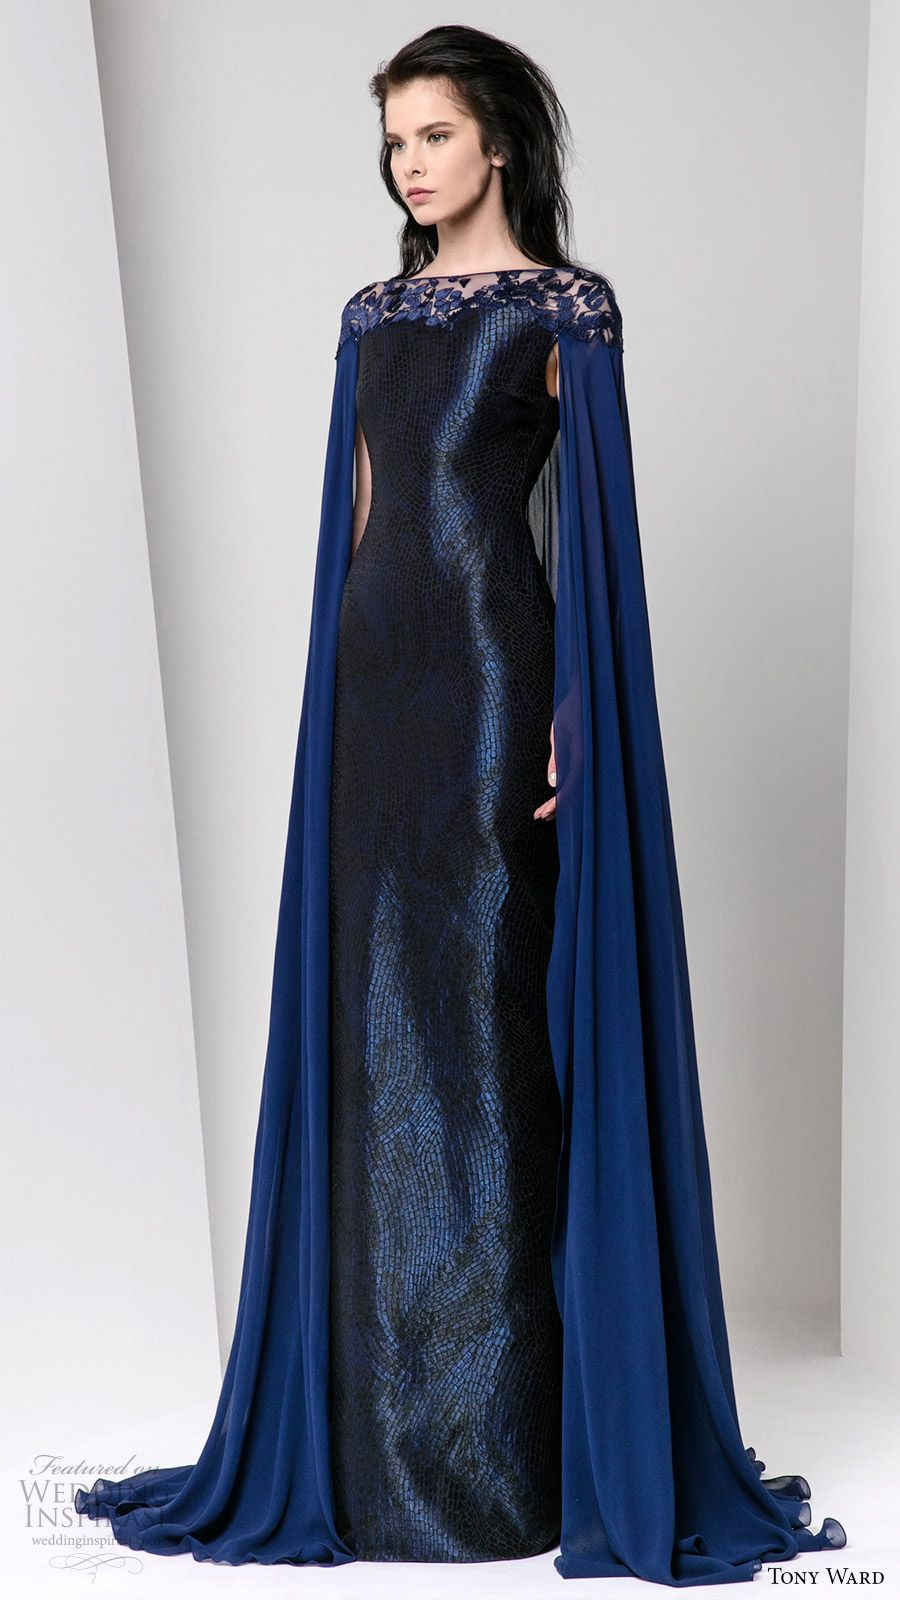 80ad4dd940 tony ward fall winter 2016 2017 rtw cape sleeves illusion bateau neckline  sheath evening dress deep blue wedding inspiration